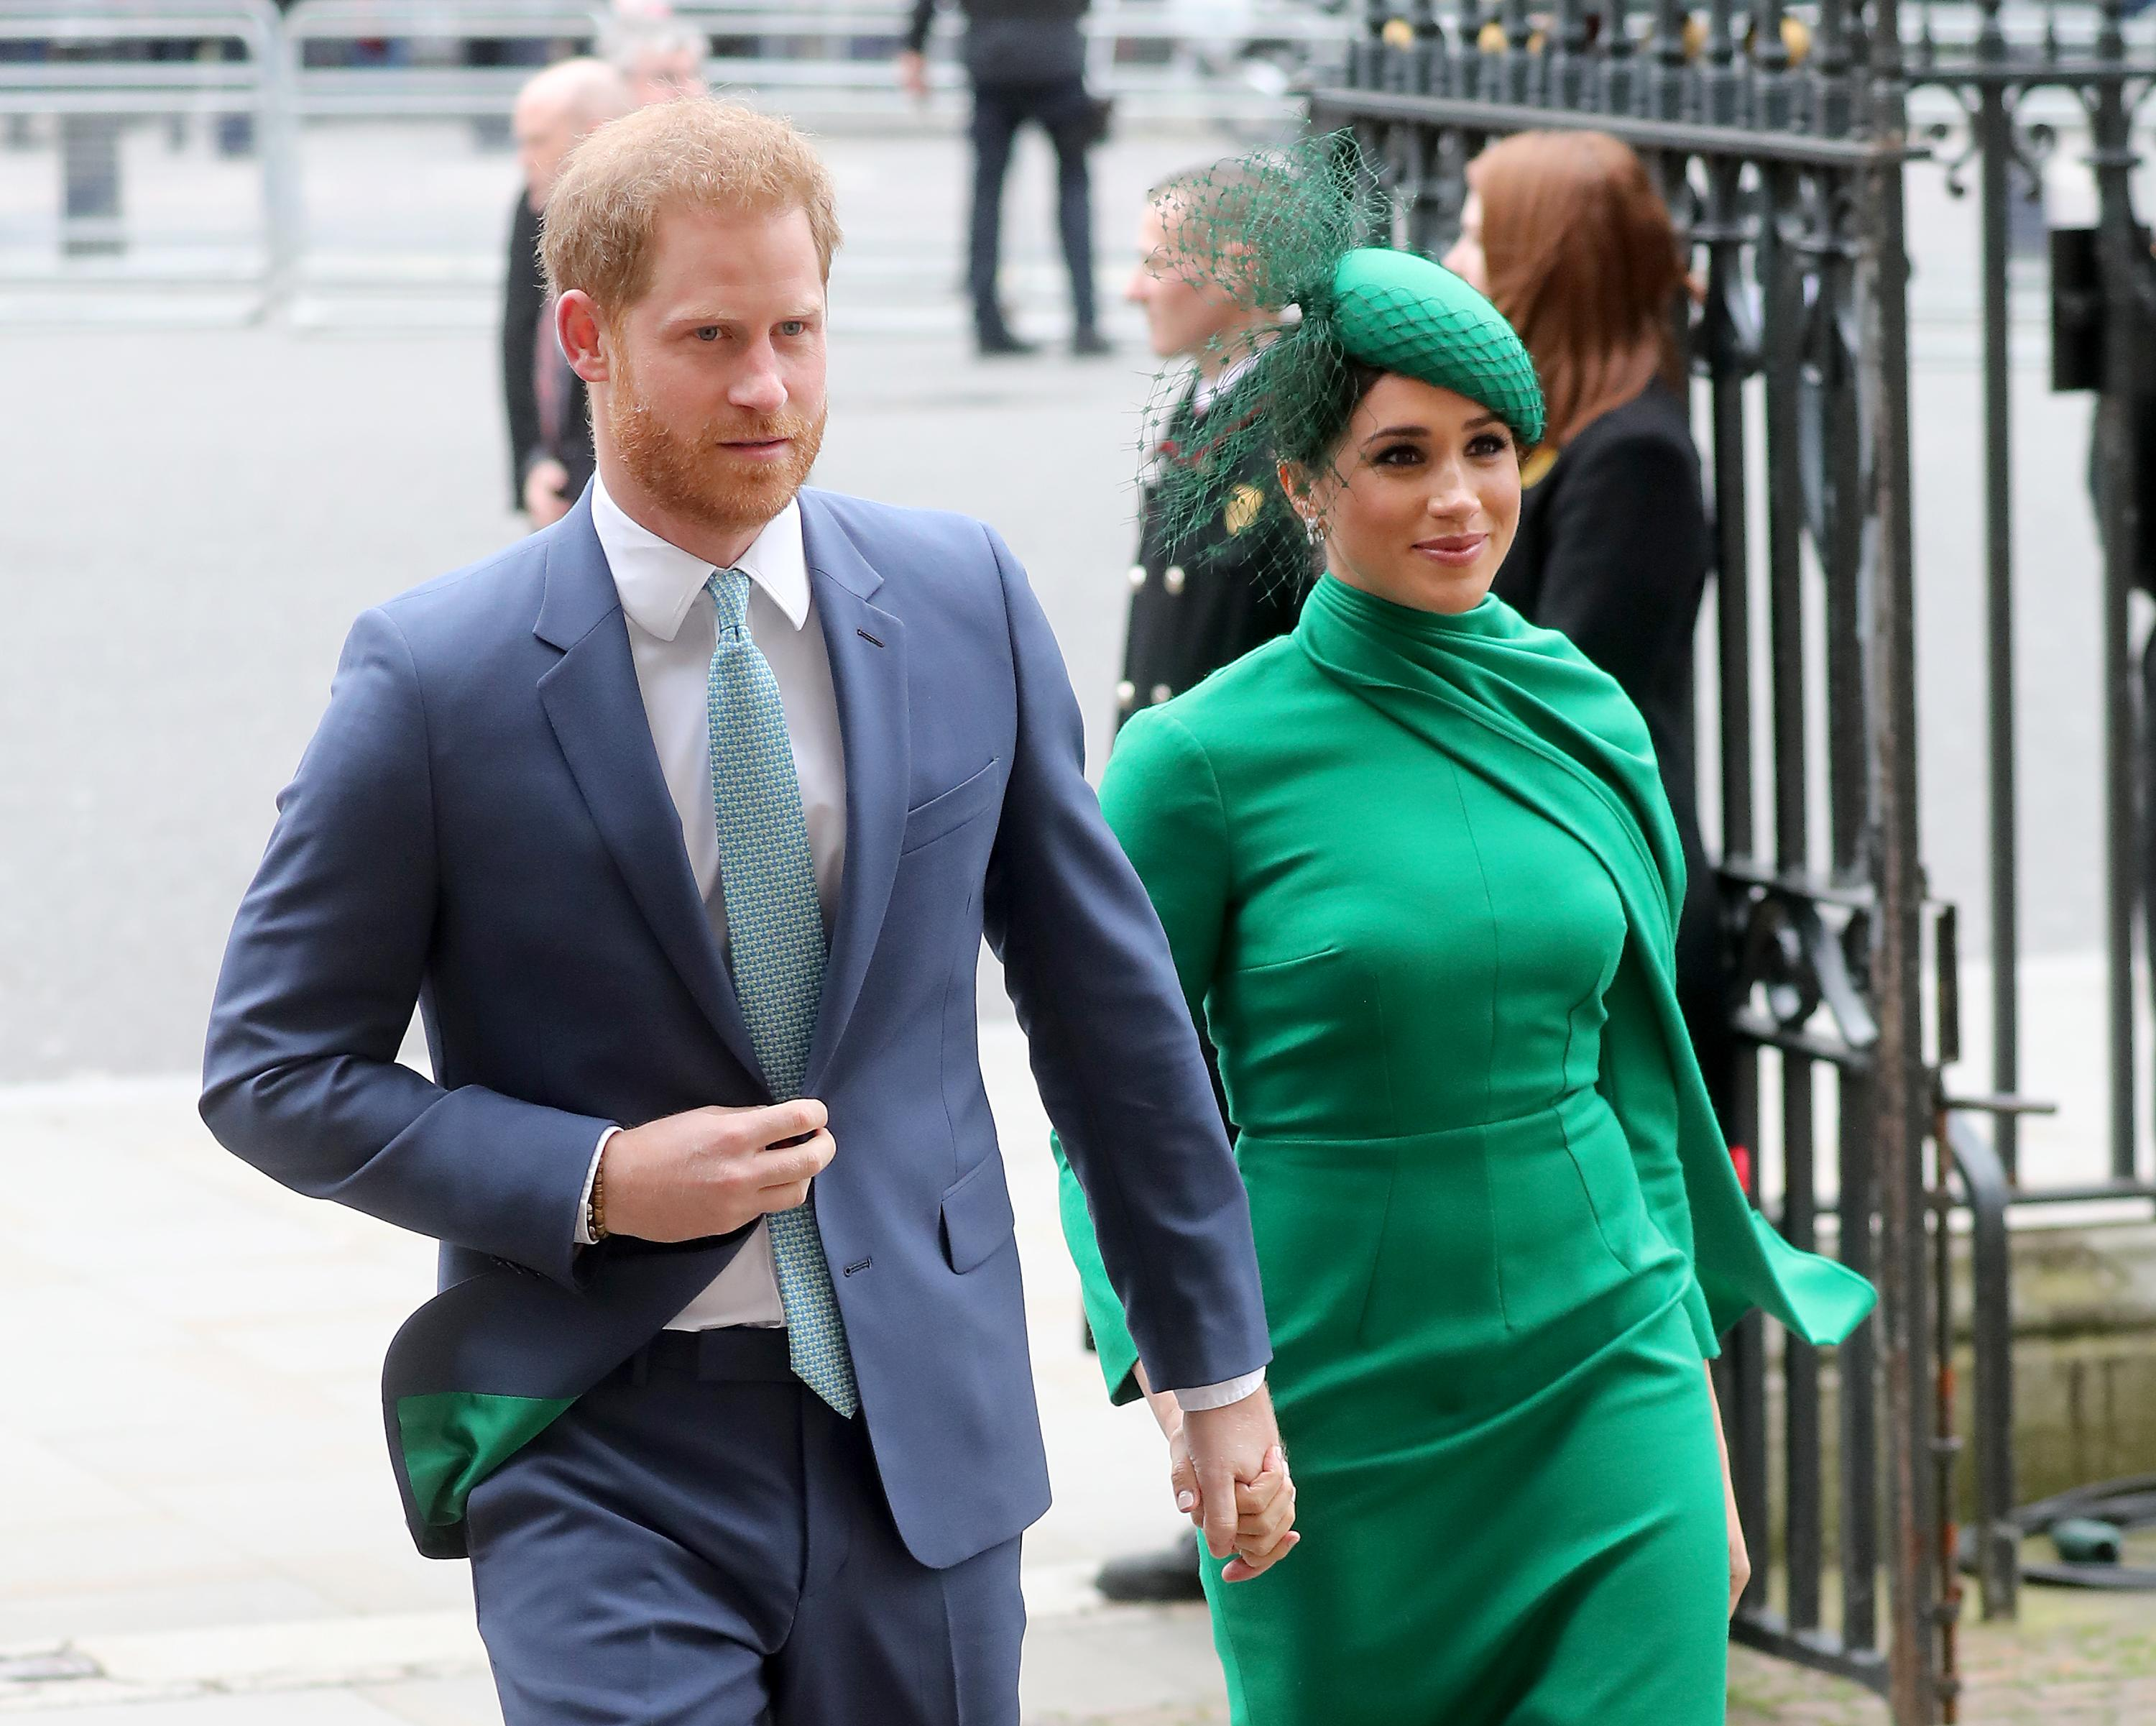 Meghan Markle and Prince Harry speak out after President Trump says U.S. won't pay for their security costs